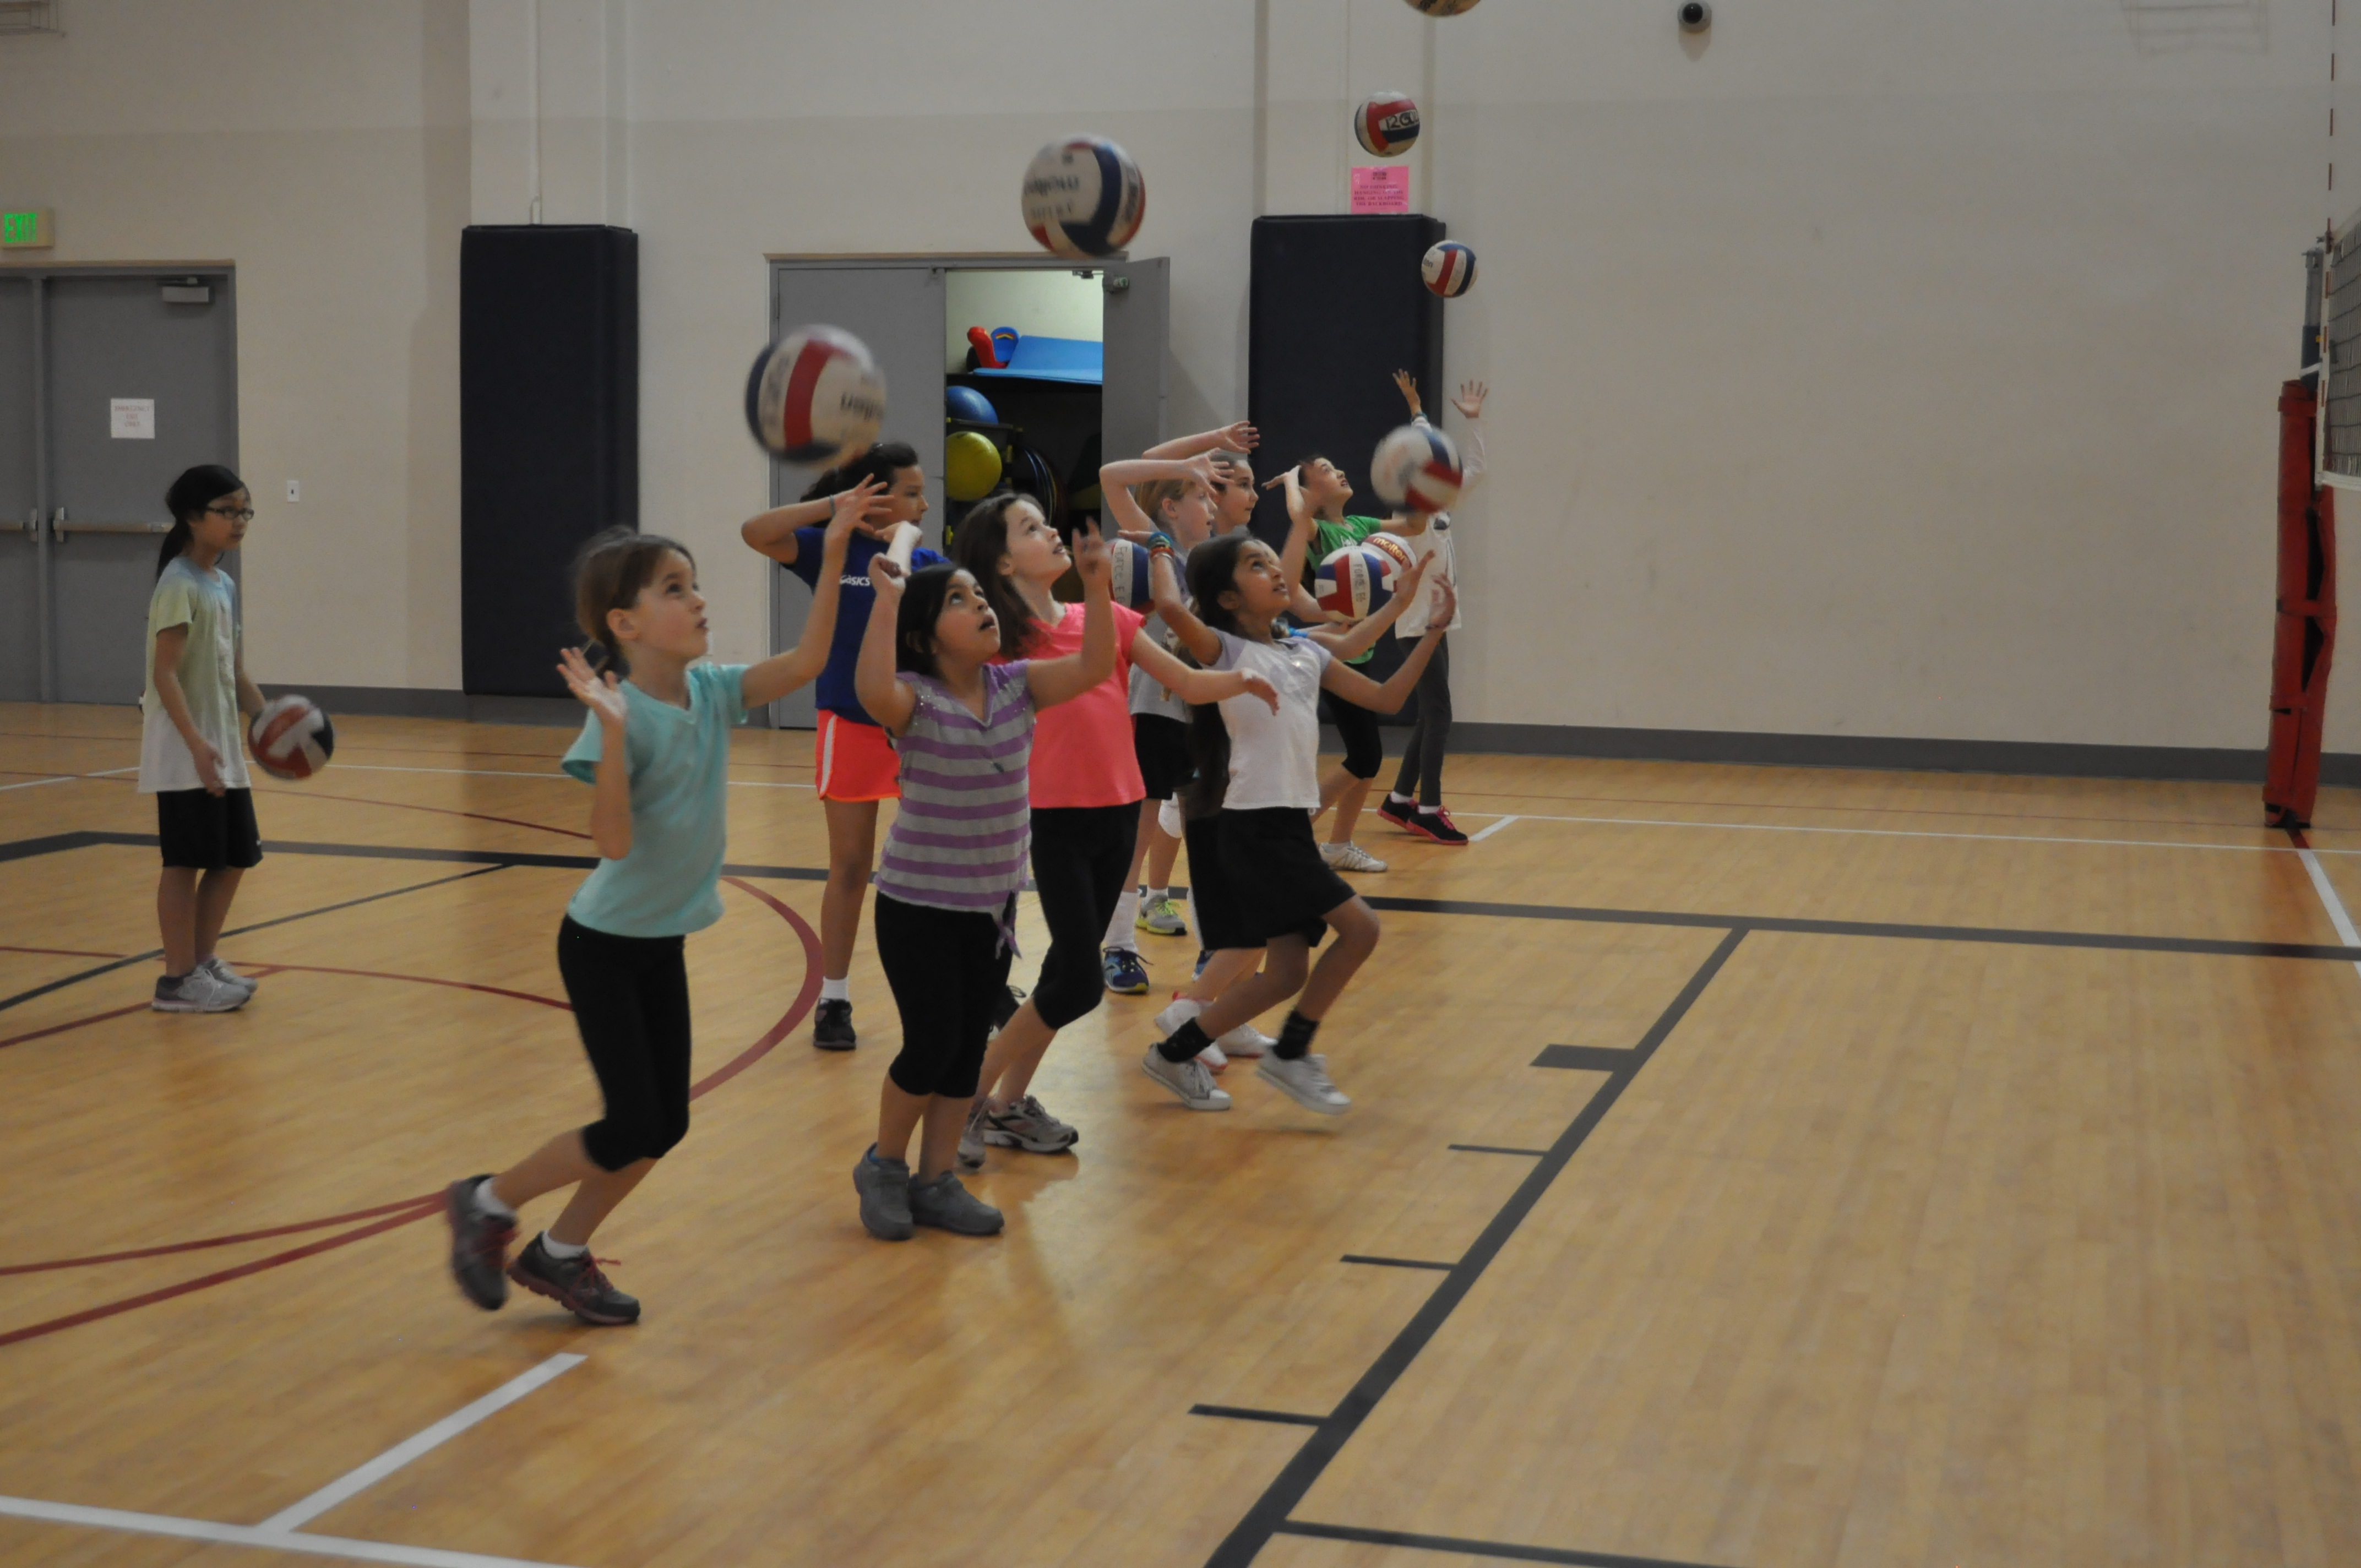 Kids Participating in a Basketball Camp